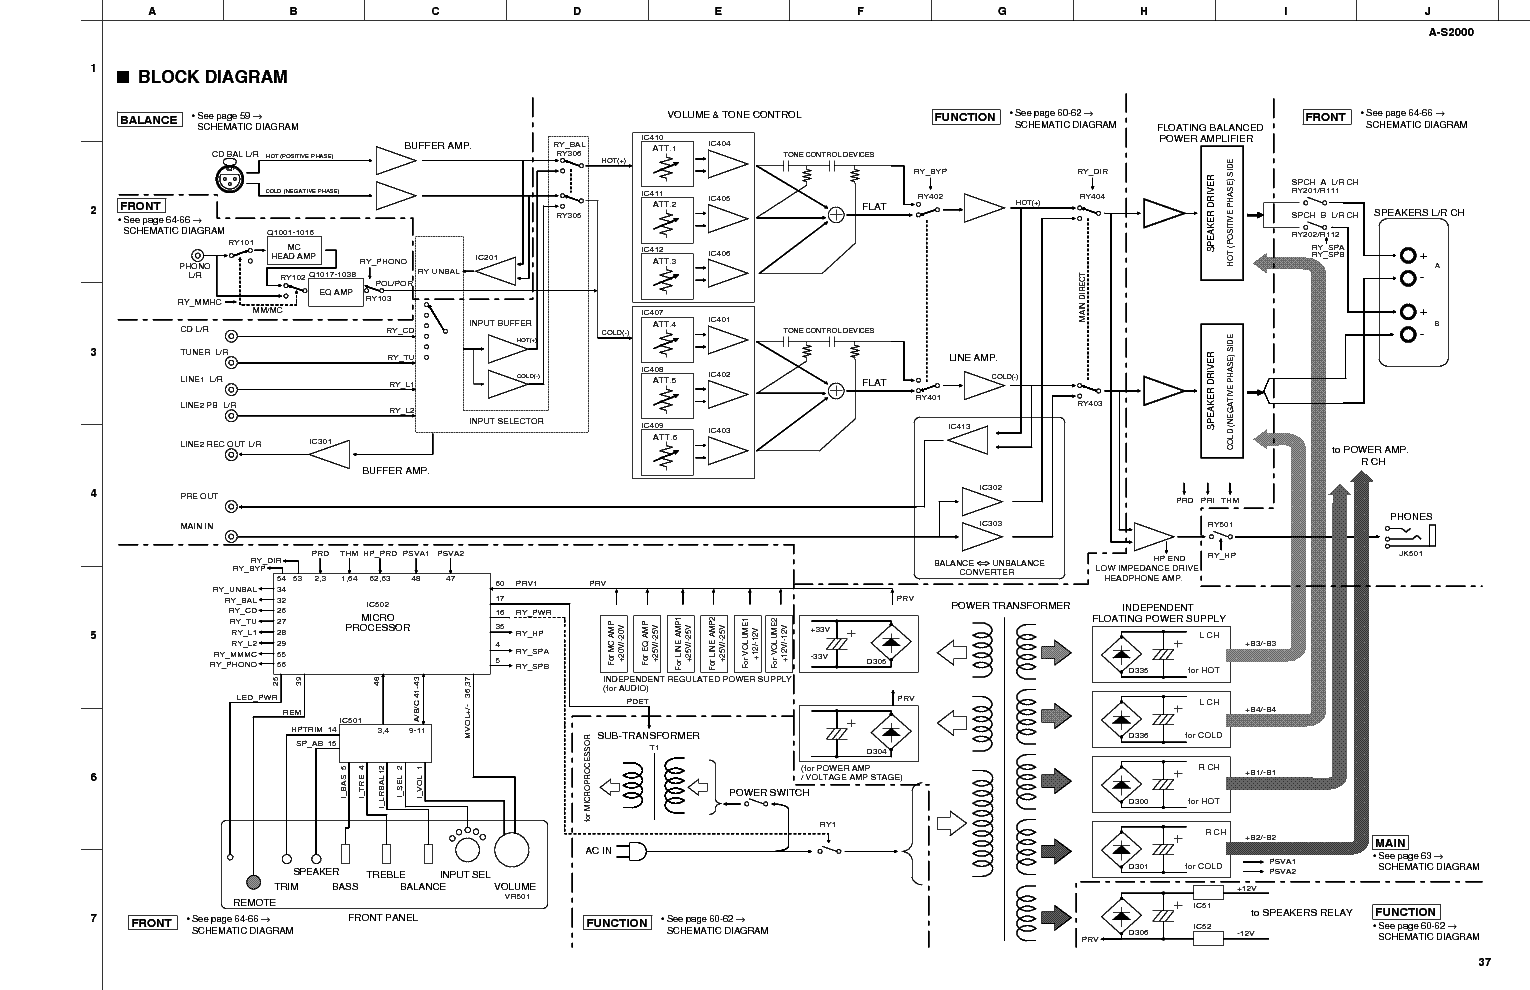 yamaha a s2000 sch service manual download schematics eeprom rh elektrotanya com Yamaha CD-S2000 yamaha ls2000 service manual free download